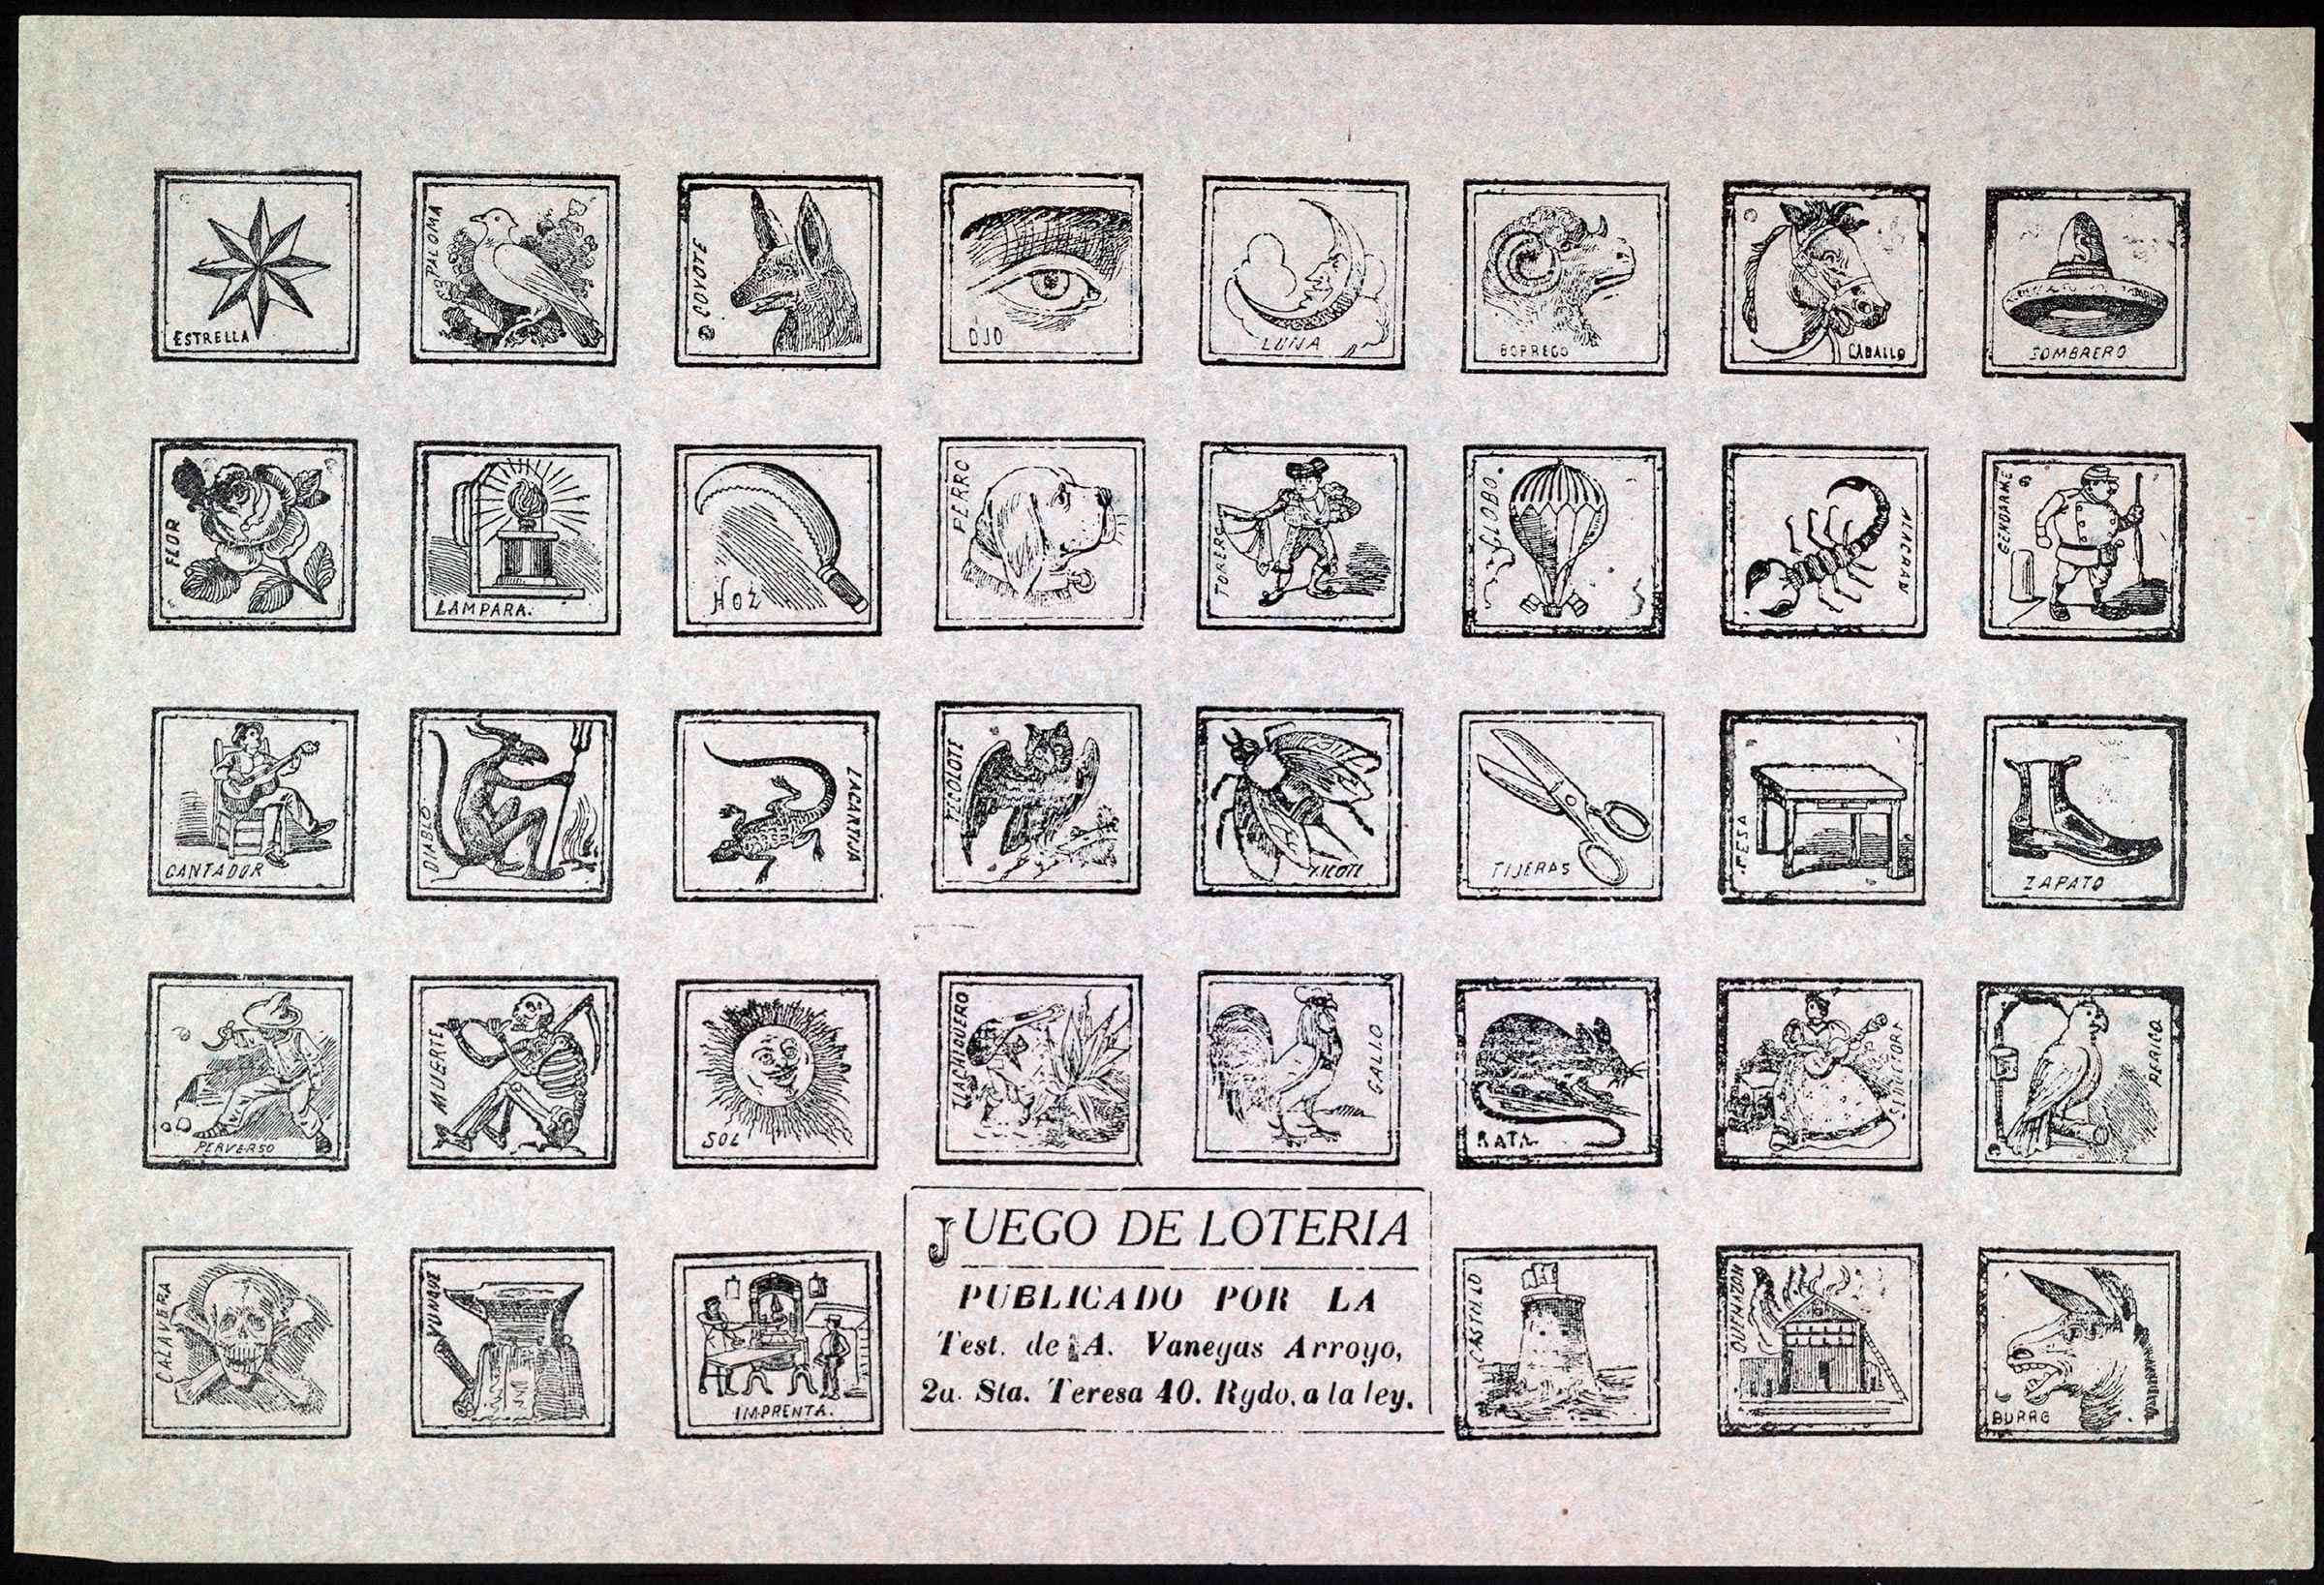 Lotería game by José Guadalupe Posada, published in Mexico City between 1909 and 1920.